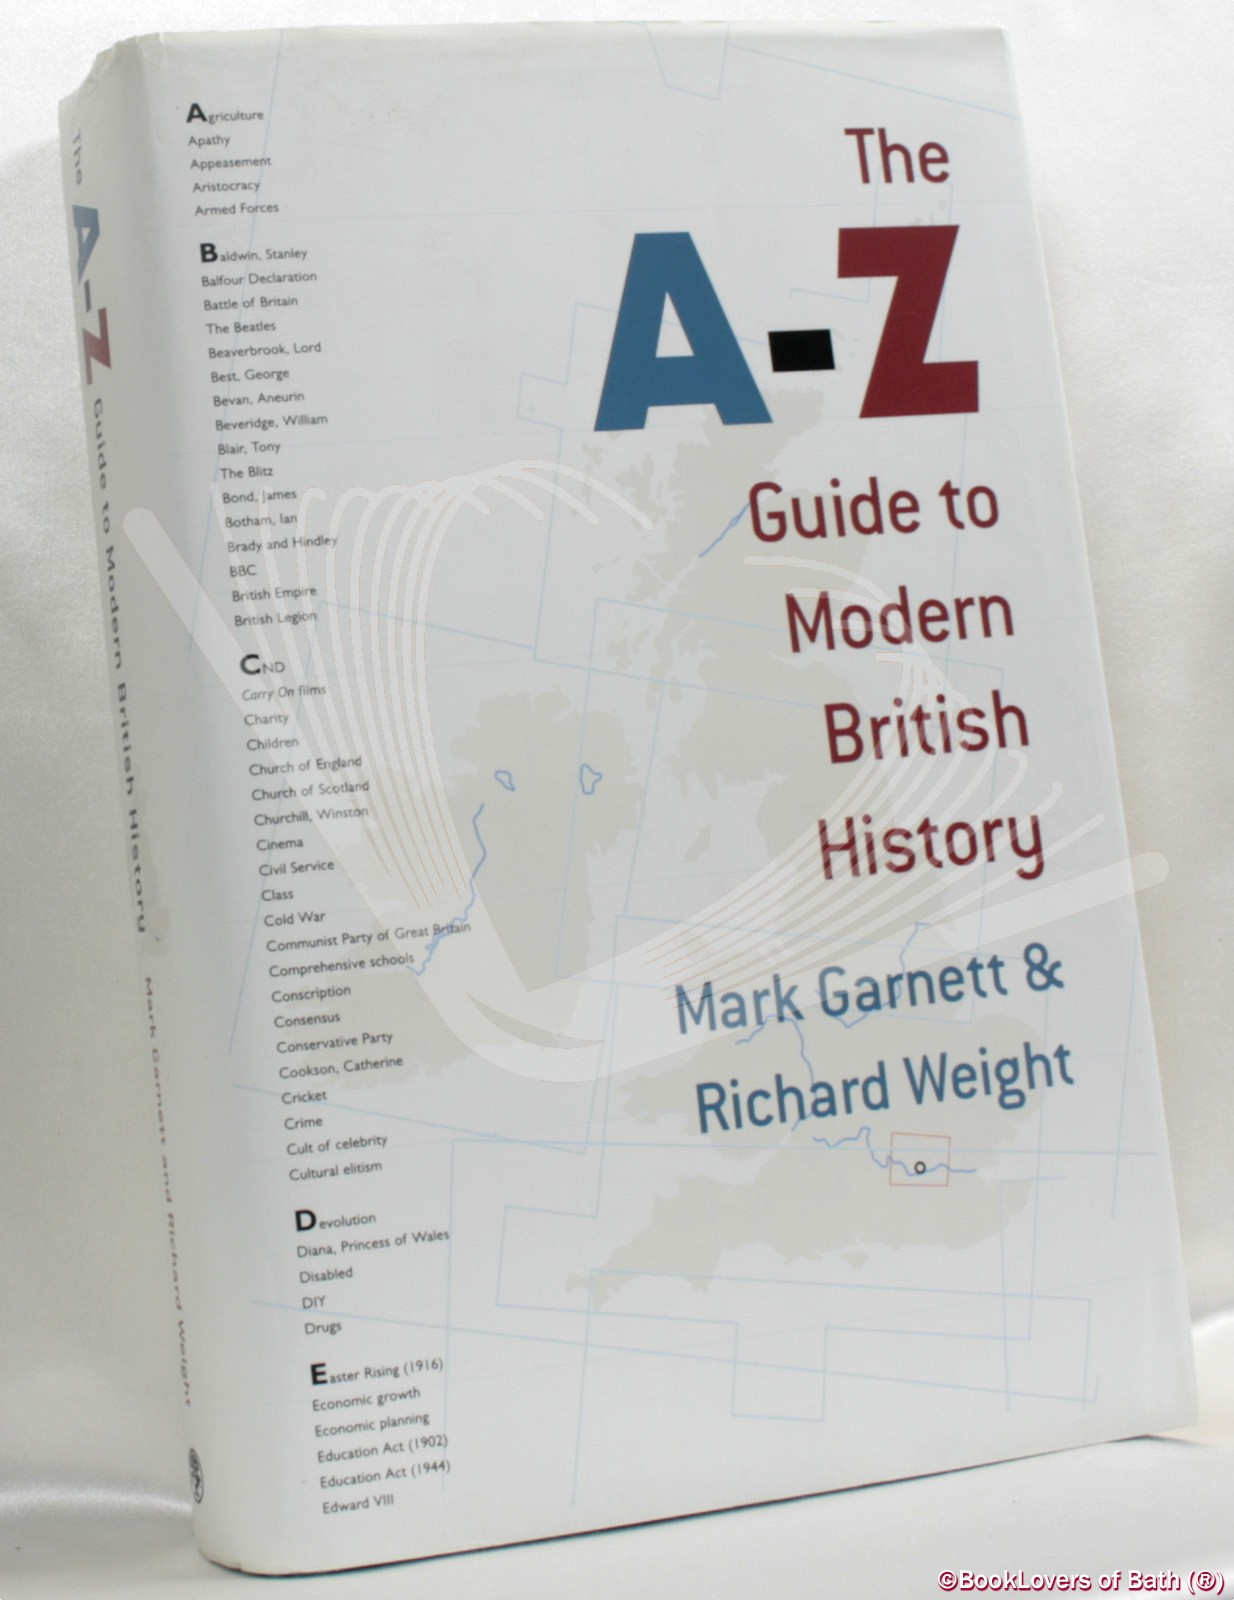 The A-Z Guide to Modern British History - Mark Garnett & Richard Weight